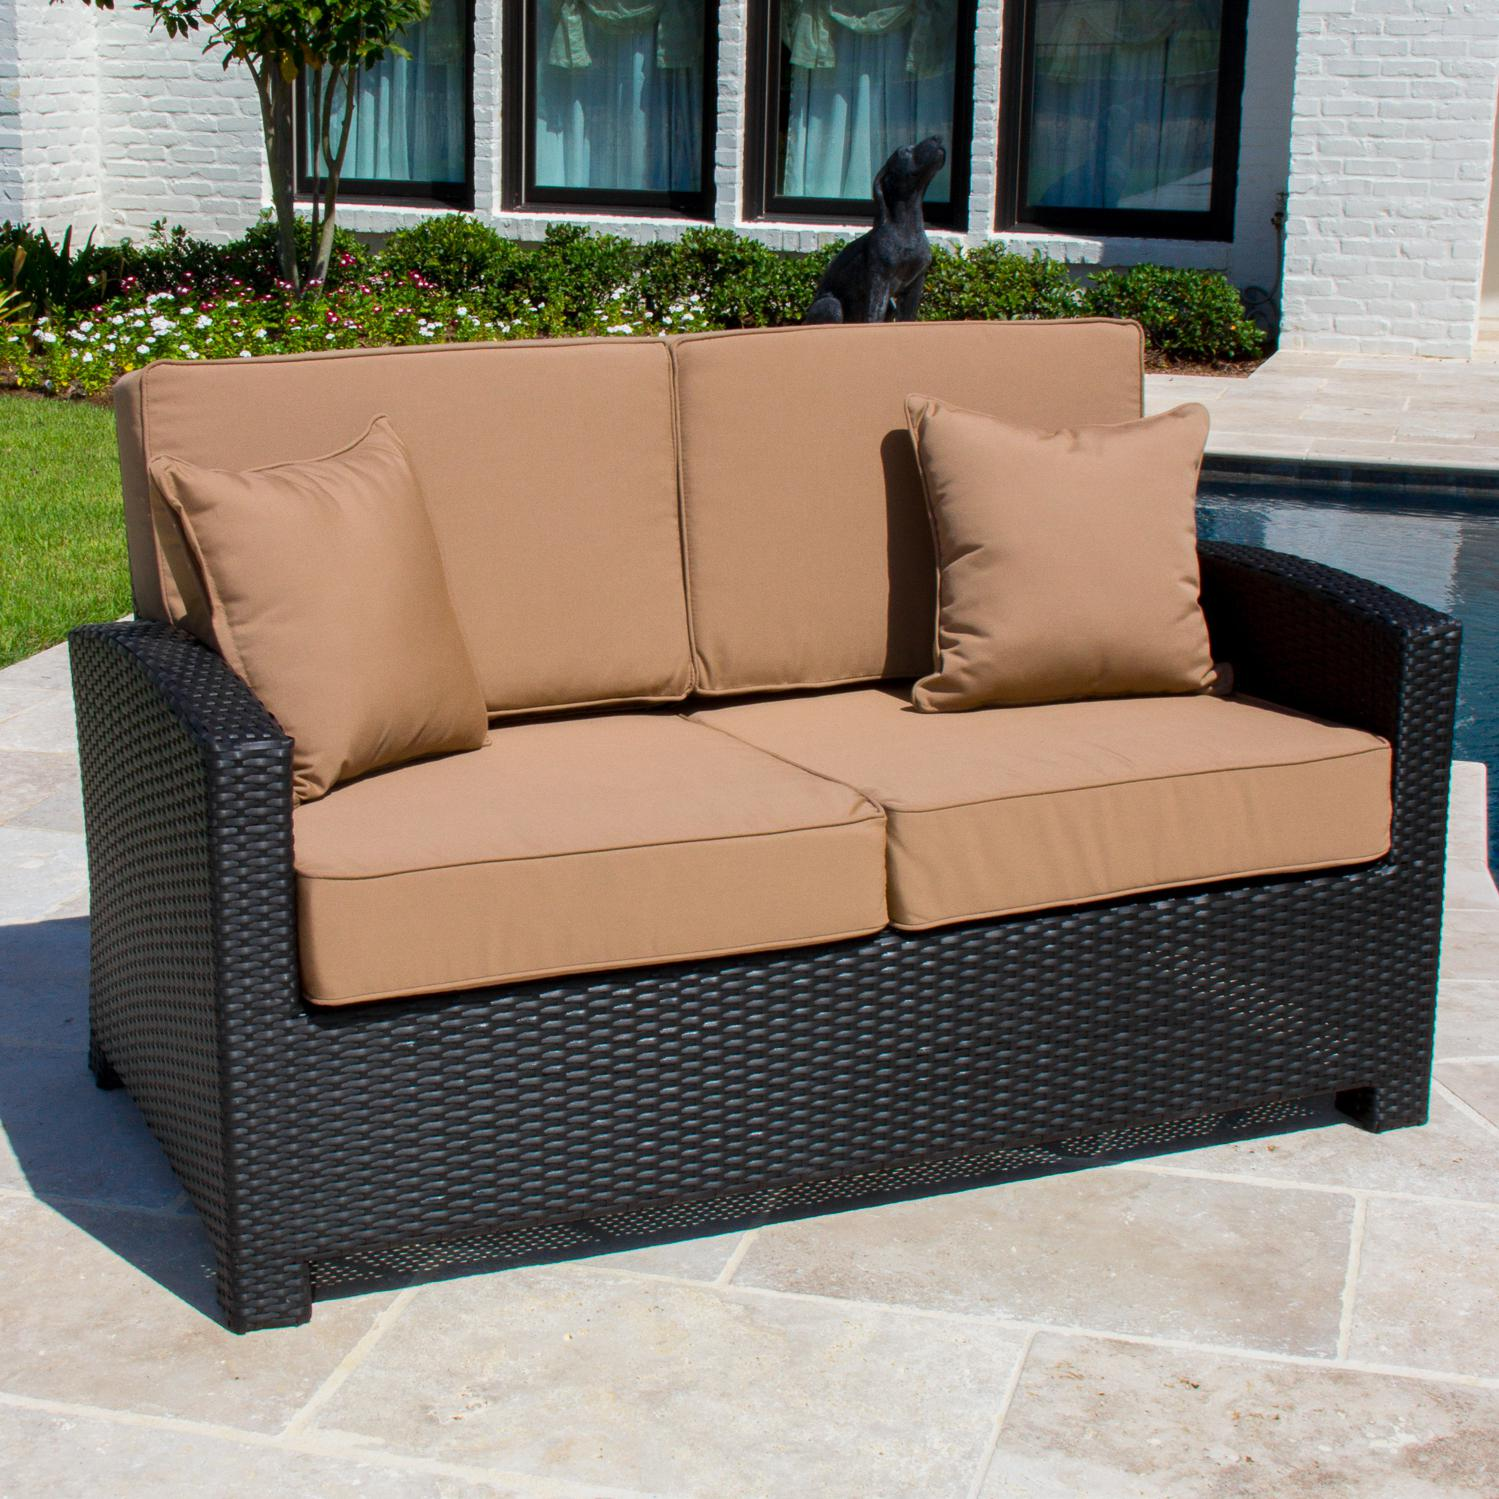 Picture of Avery Island Resin Wicker Patio High Back Loveseat By Lakeview Outdoor Designs